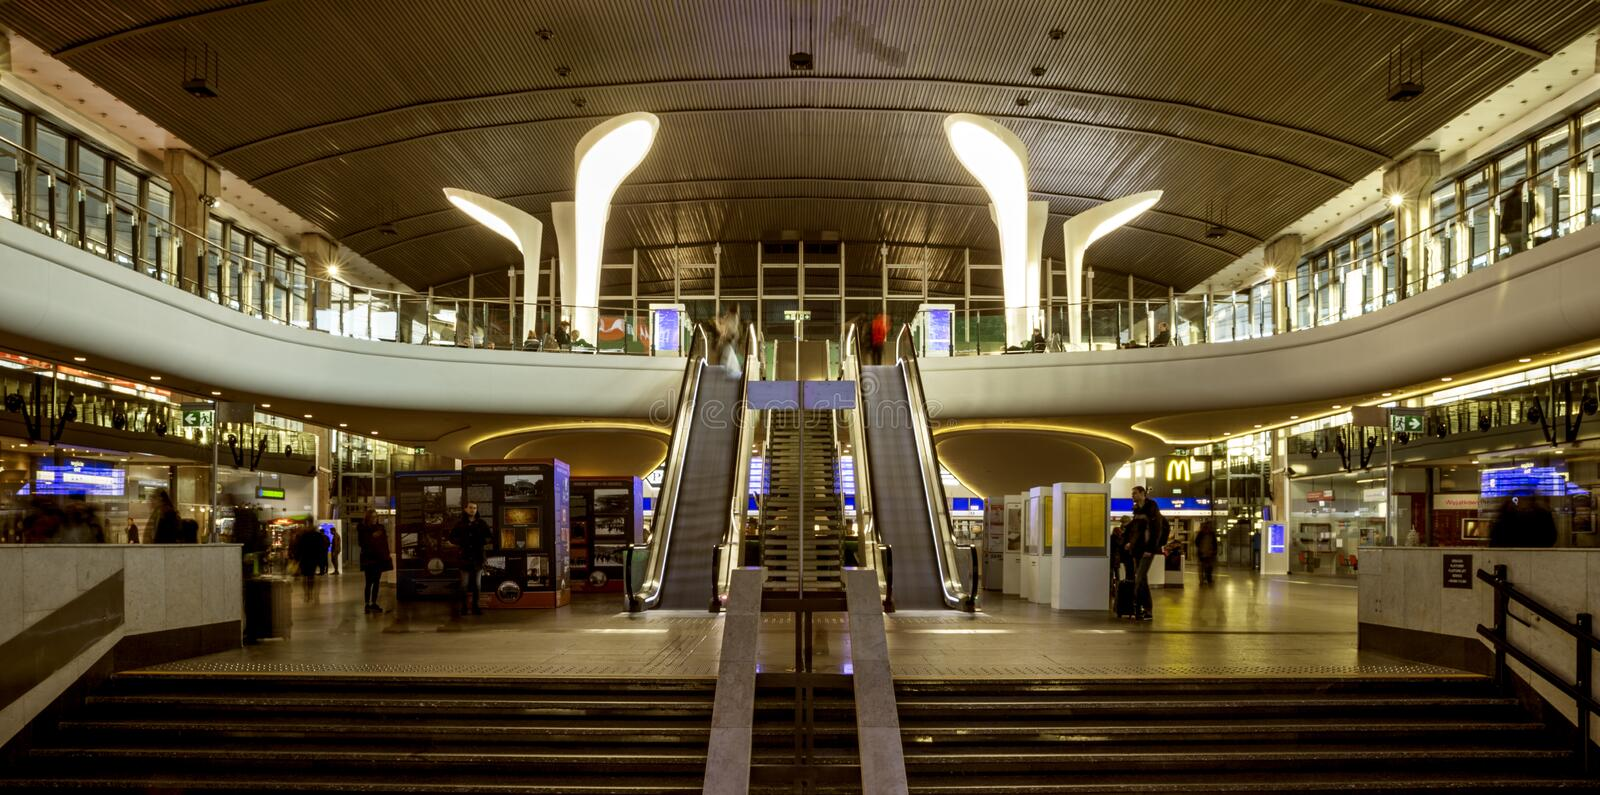 Interior of Central Train Station in Warsaw, Poland stock image